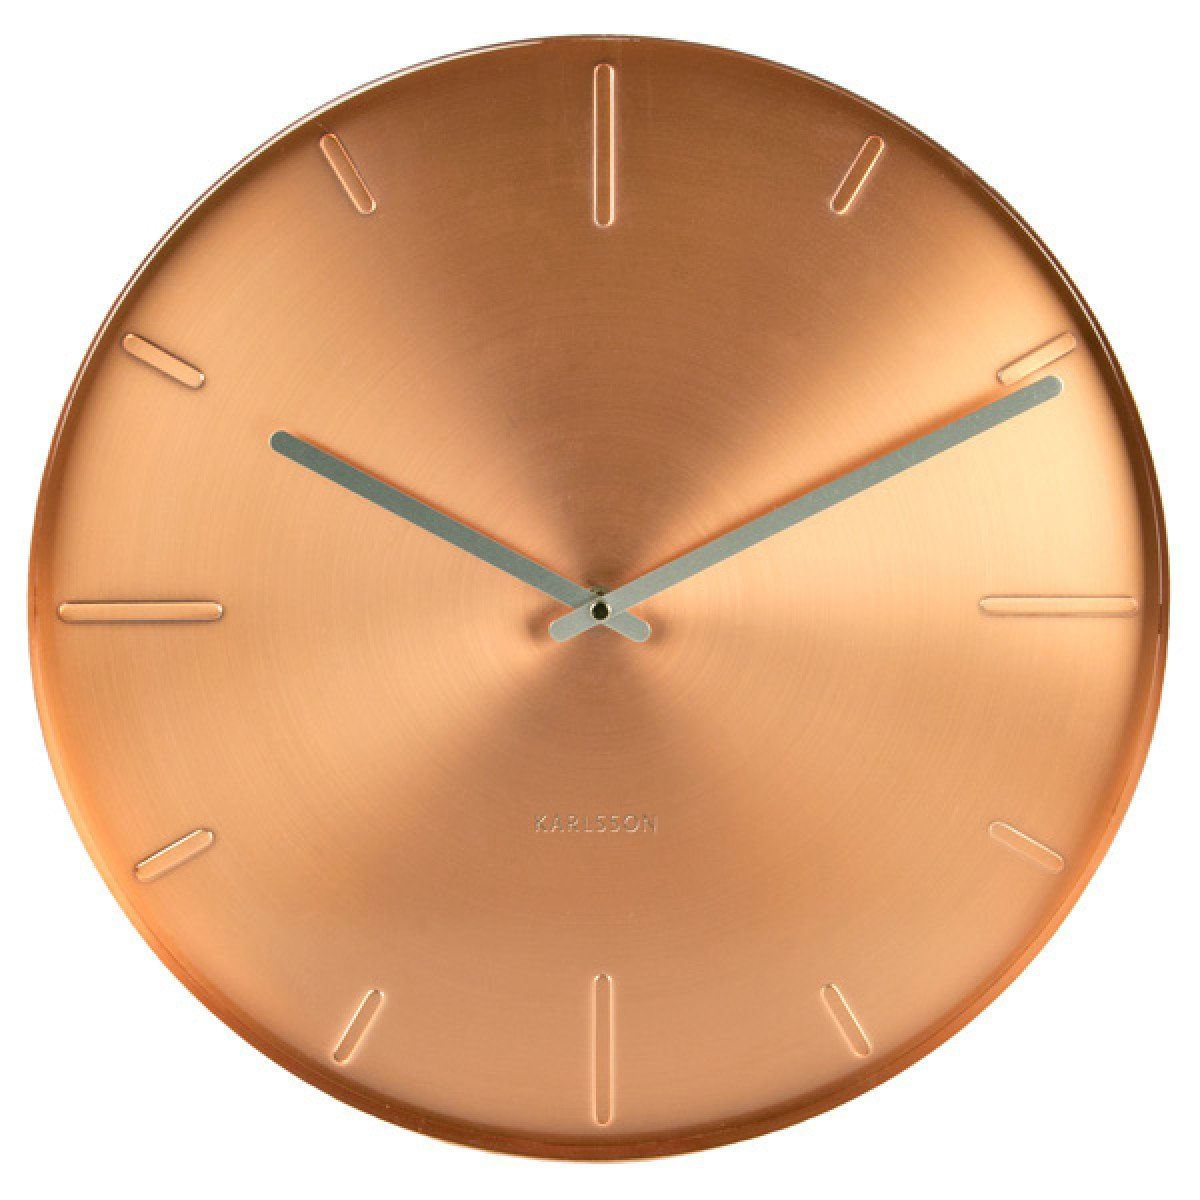 Karlsson Belt Copper Wall Clock - Ø 40cm x 3.5cm